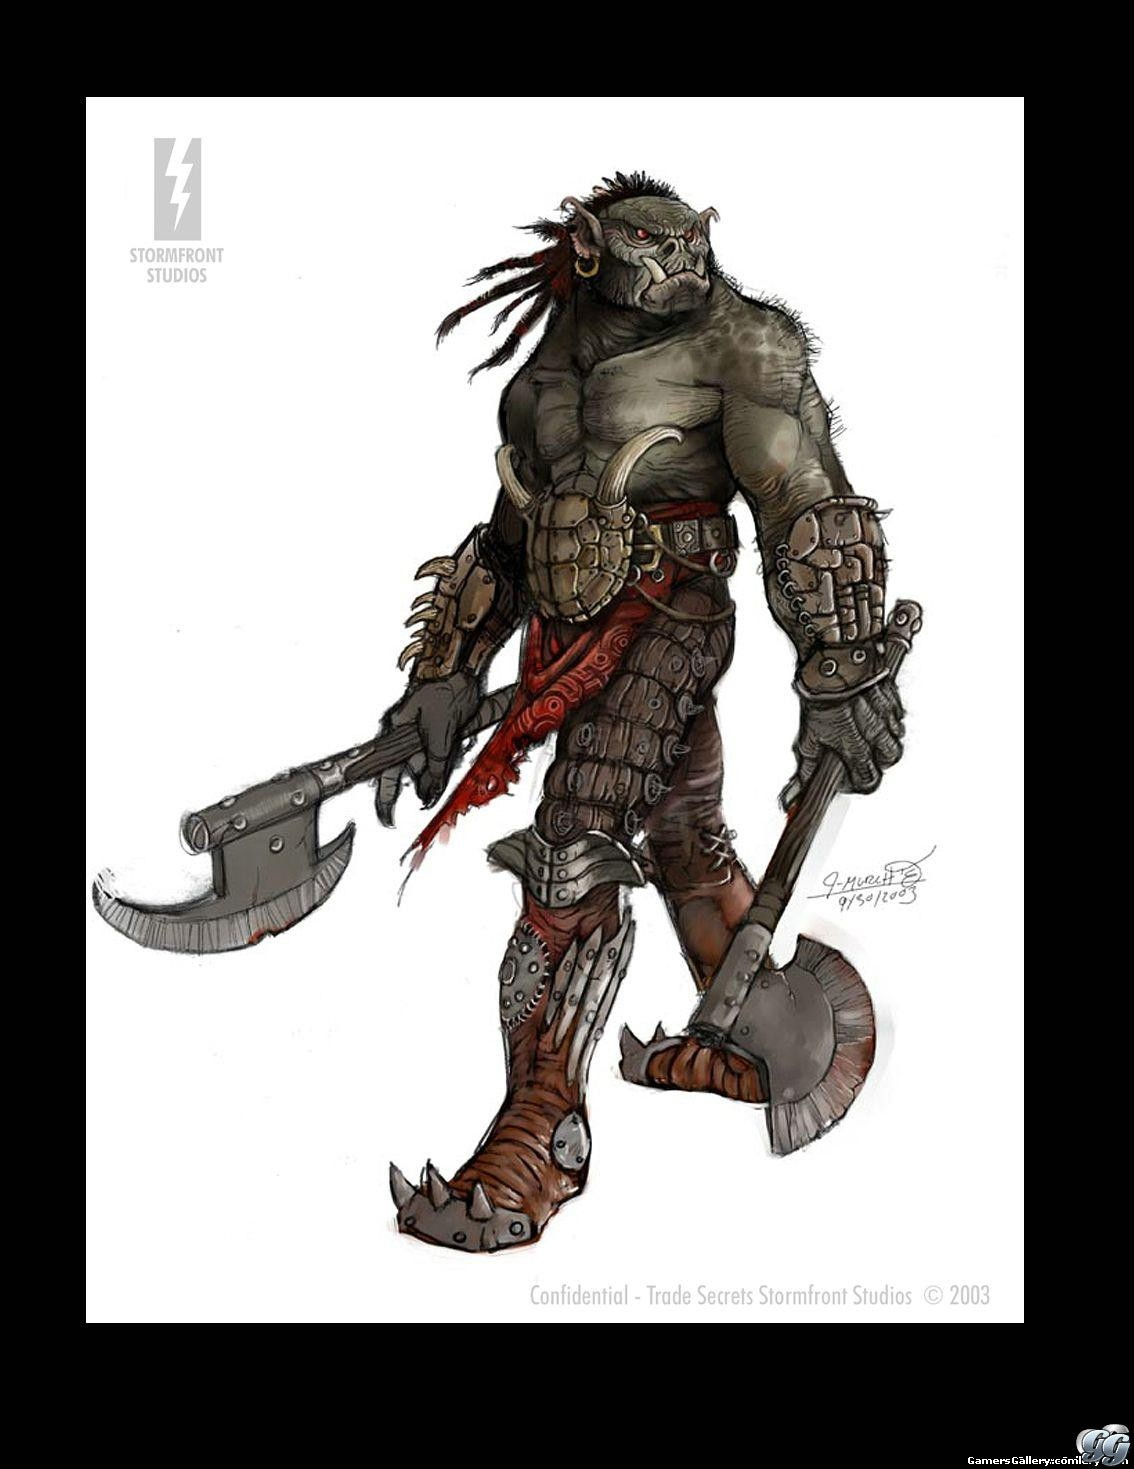 orc draw Concept art, orco Videogame: Forgotten Realms, Demon Stone (2004-11) © Atari, Stormfront Studios, Wizards of the Coast & Hasbro